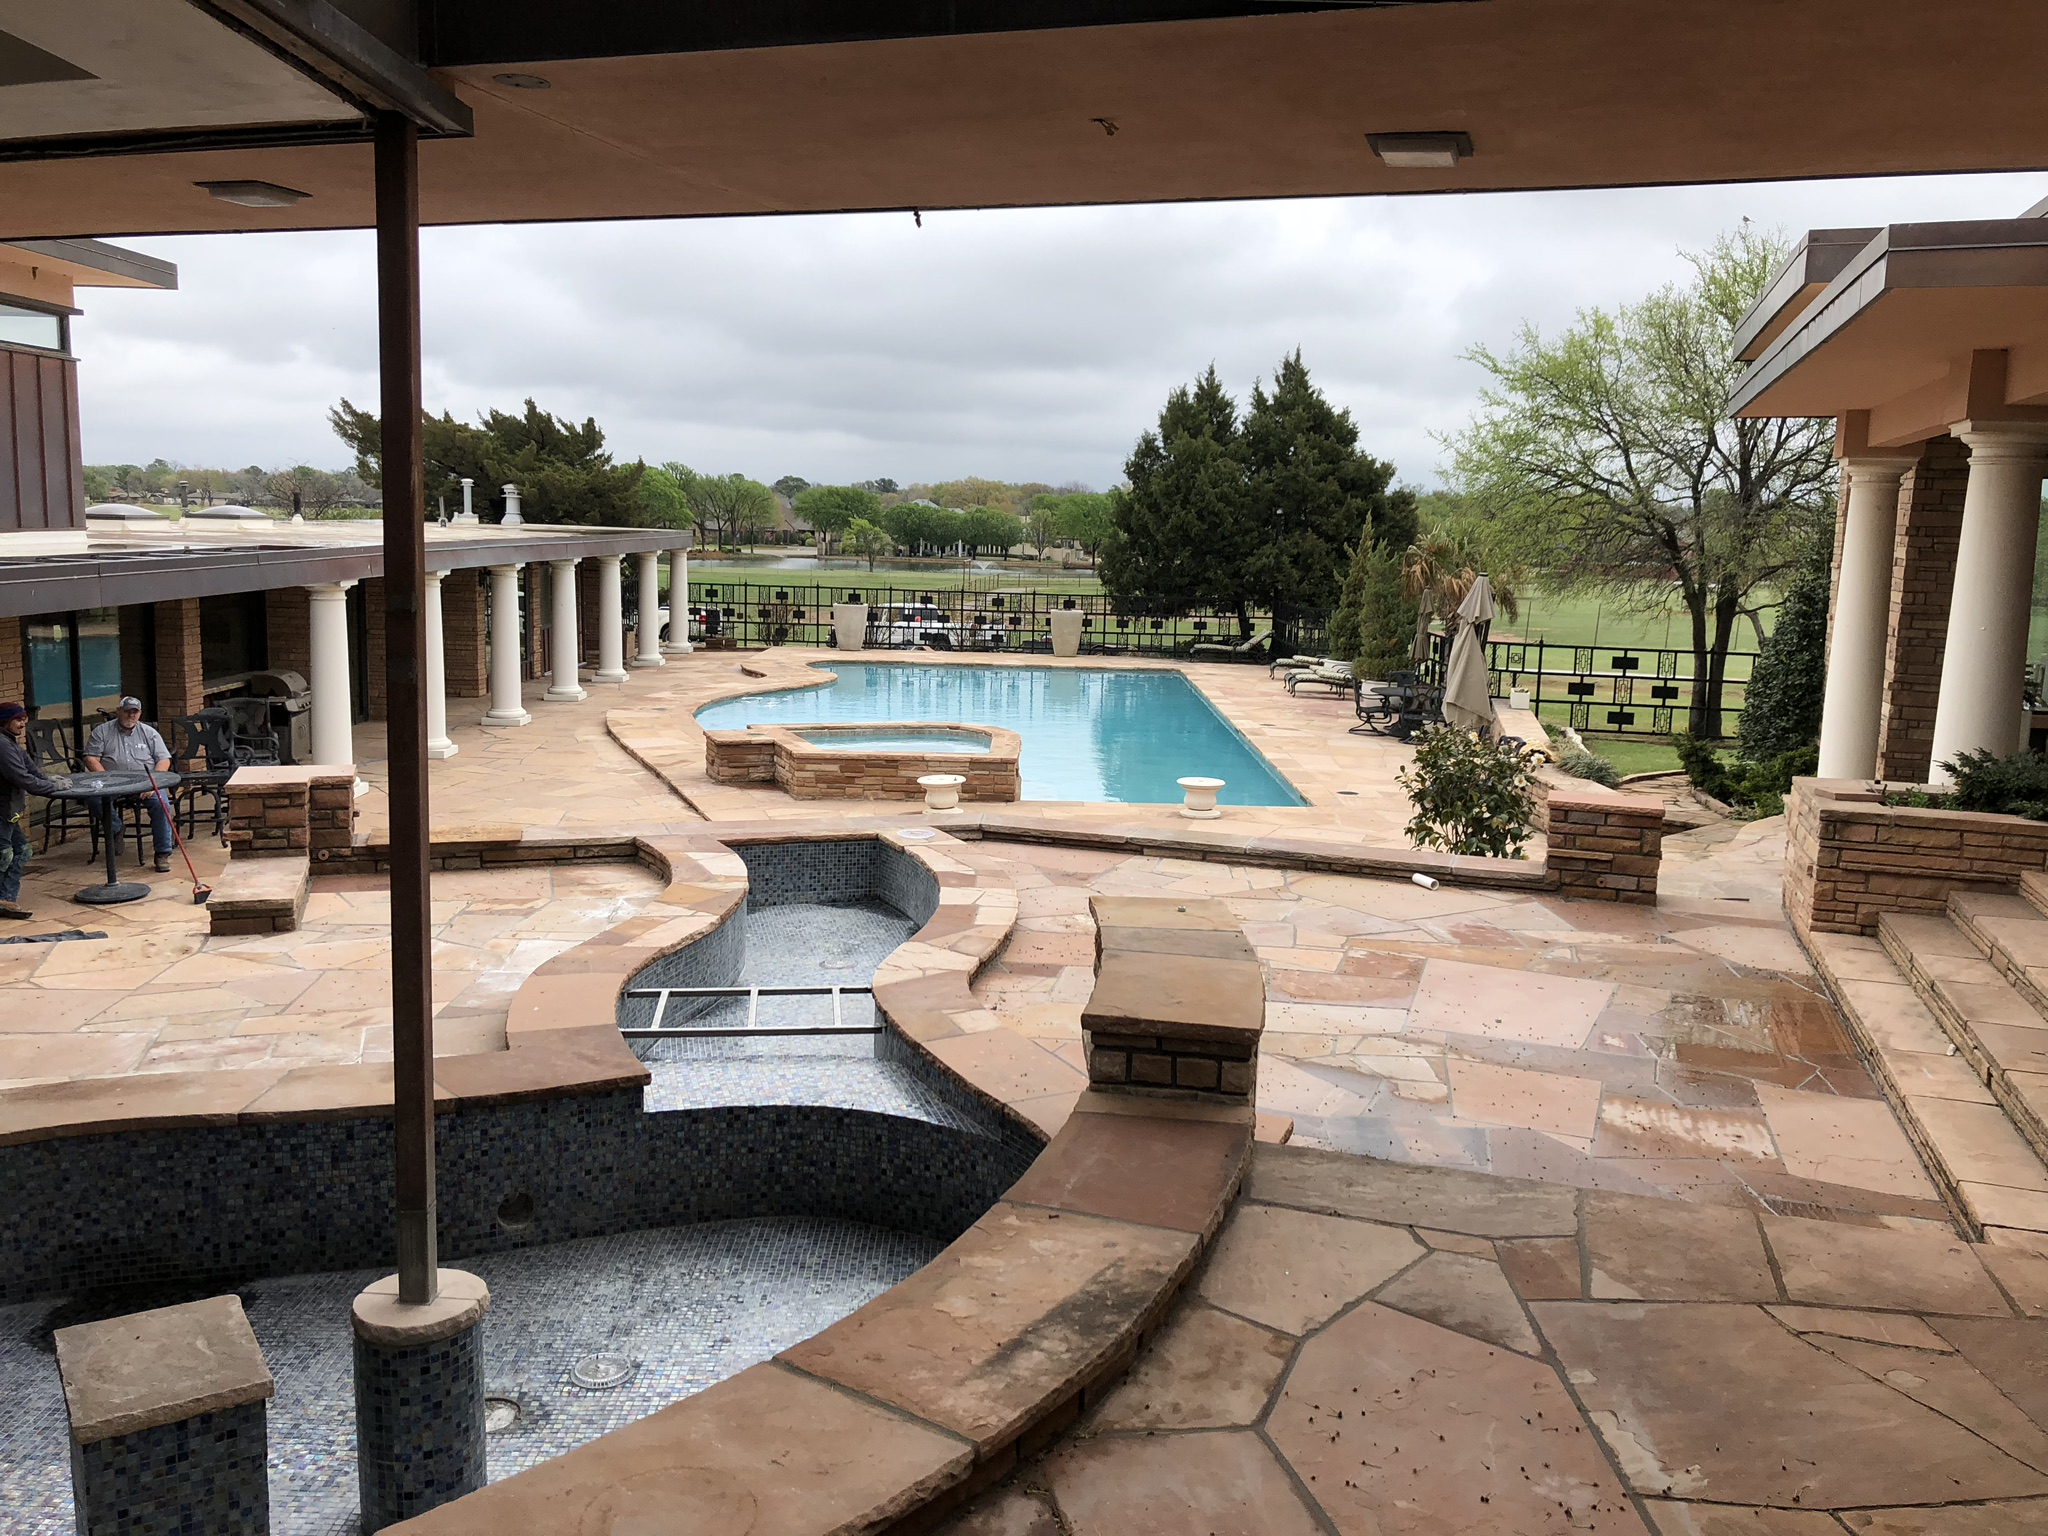 Here is one last look at this gorgeous backyard setting. As you can see from this image, there are going to be two elevated water features that run down to our pool. These water features will not be connected, but instead will have a catch basin and run on their own closed plumbing loop.